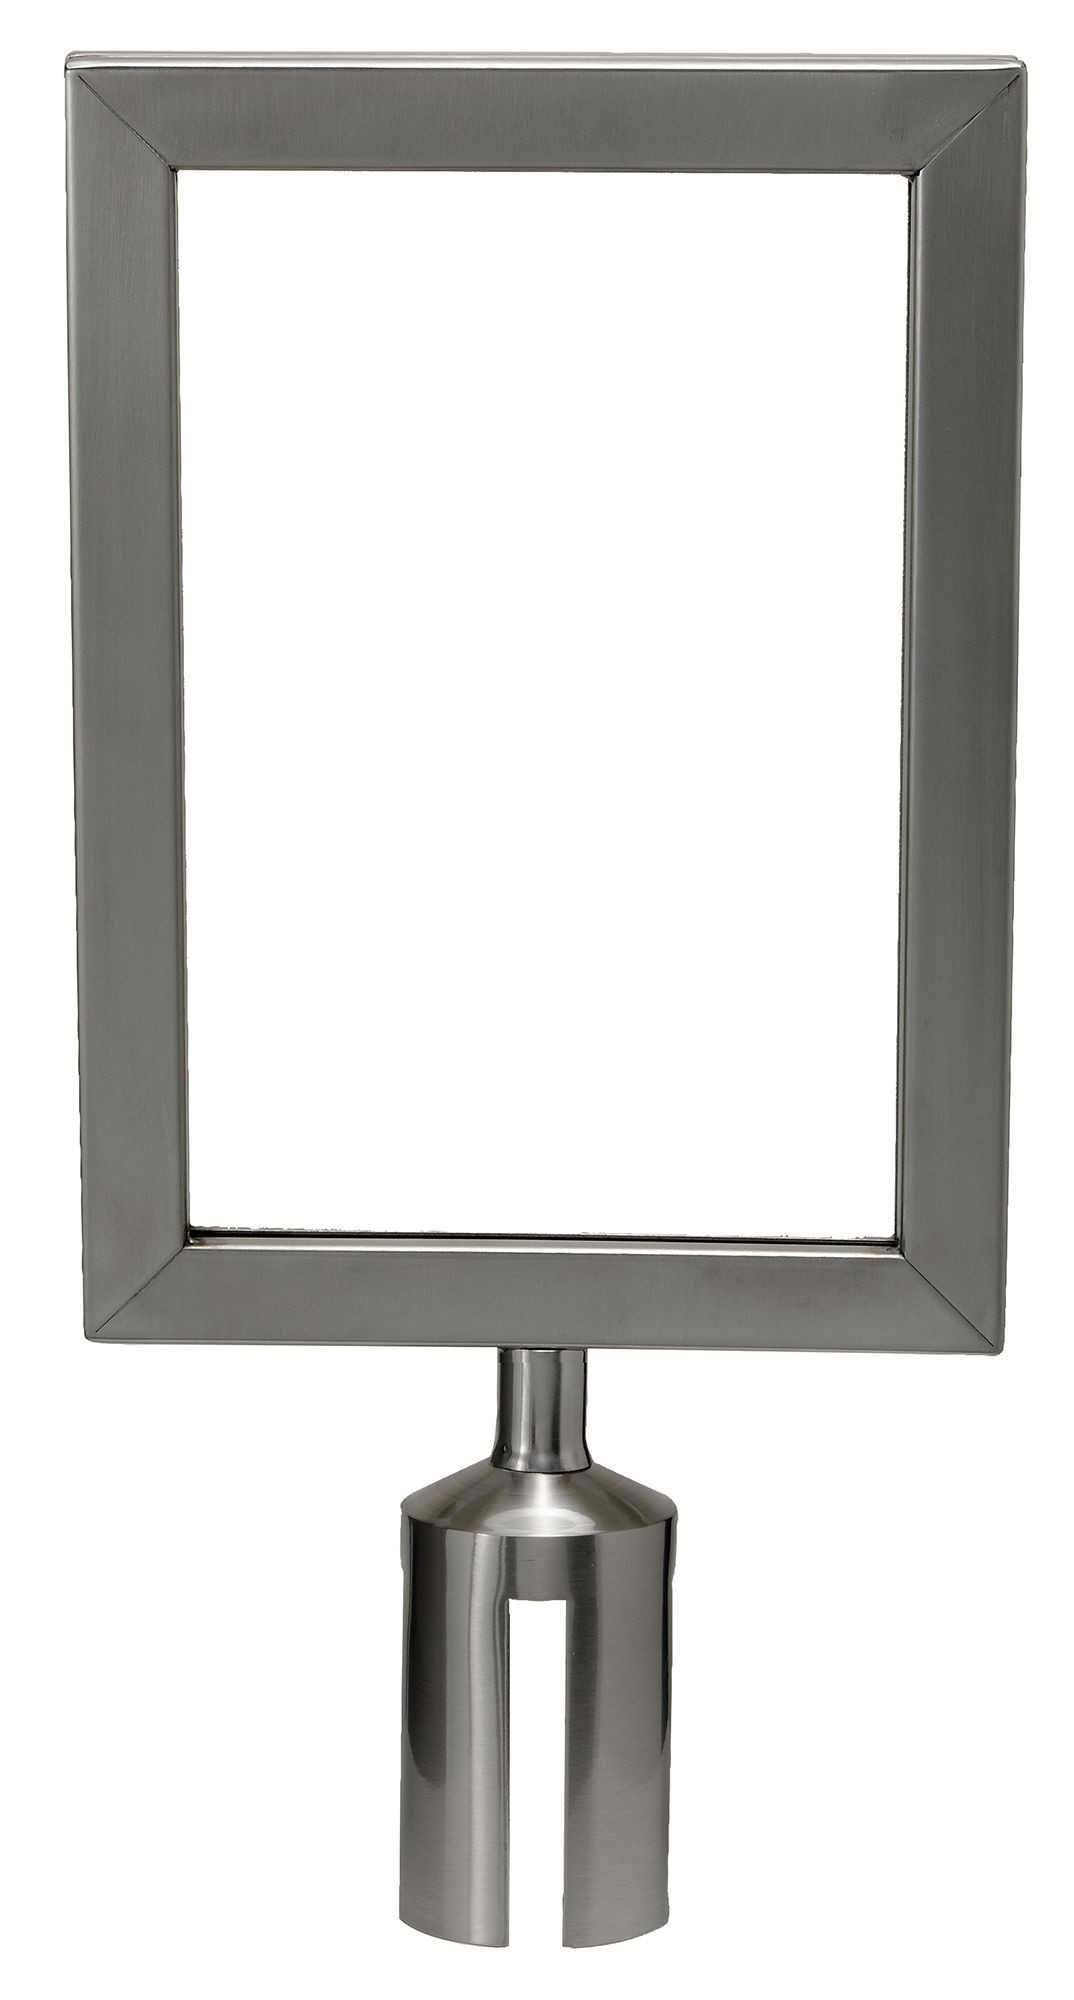 Winco CGSF-12S Stanchion Top Sign Frame, Stainless Steel